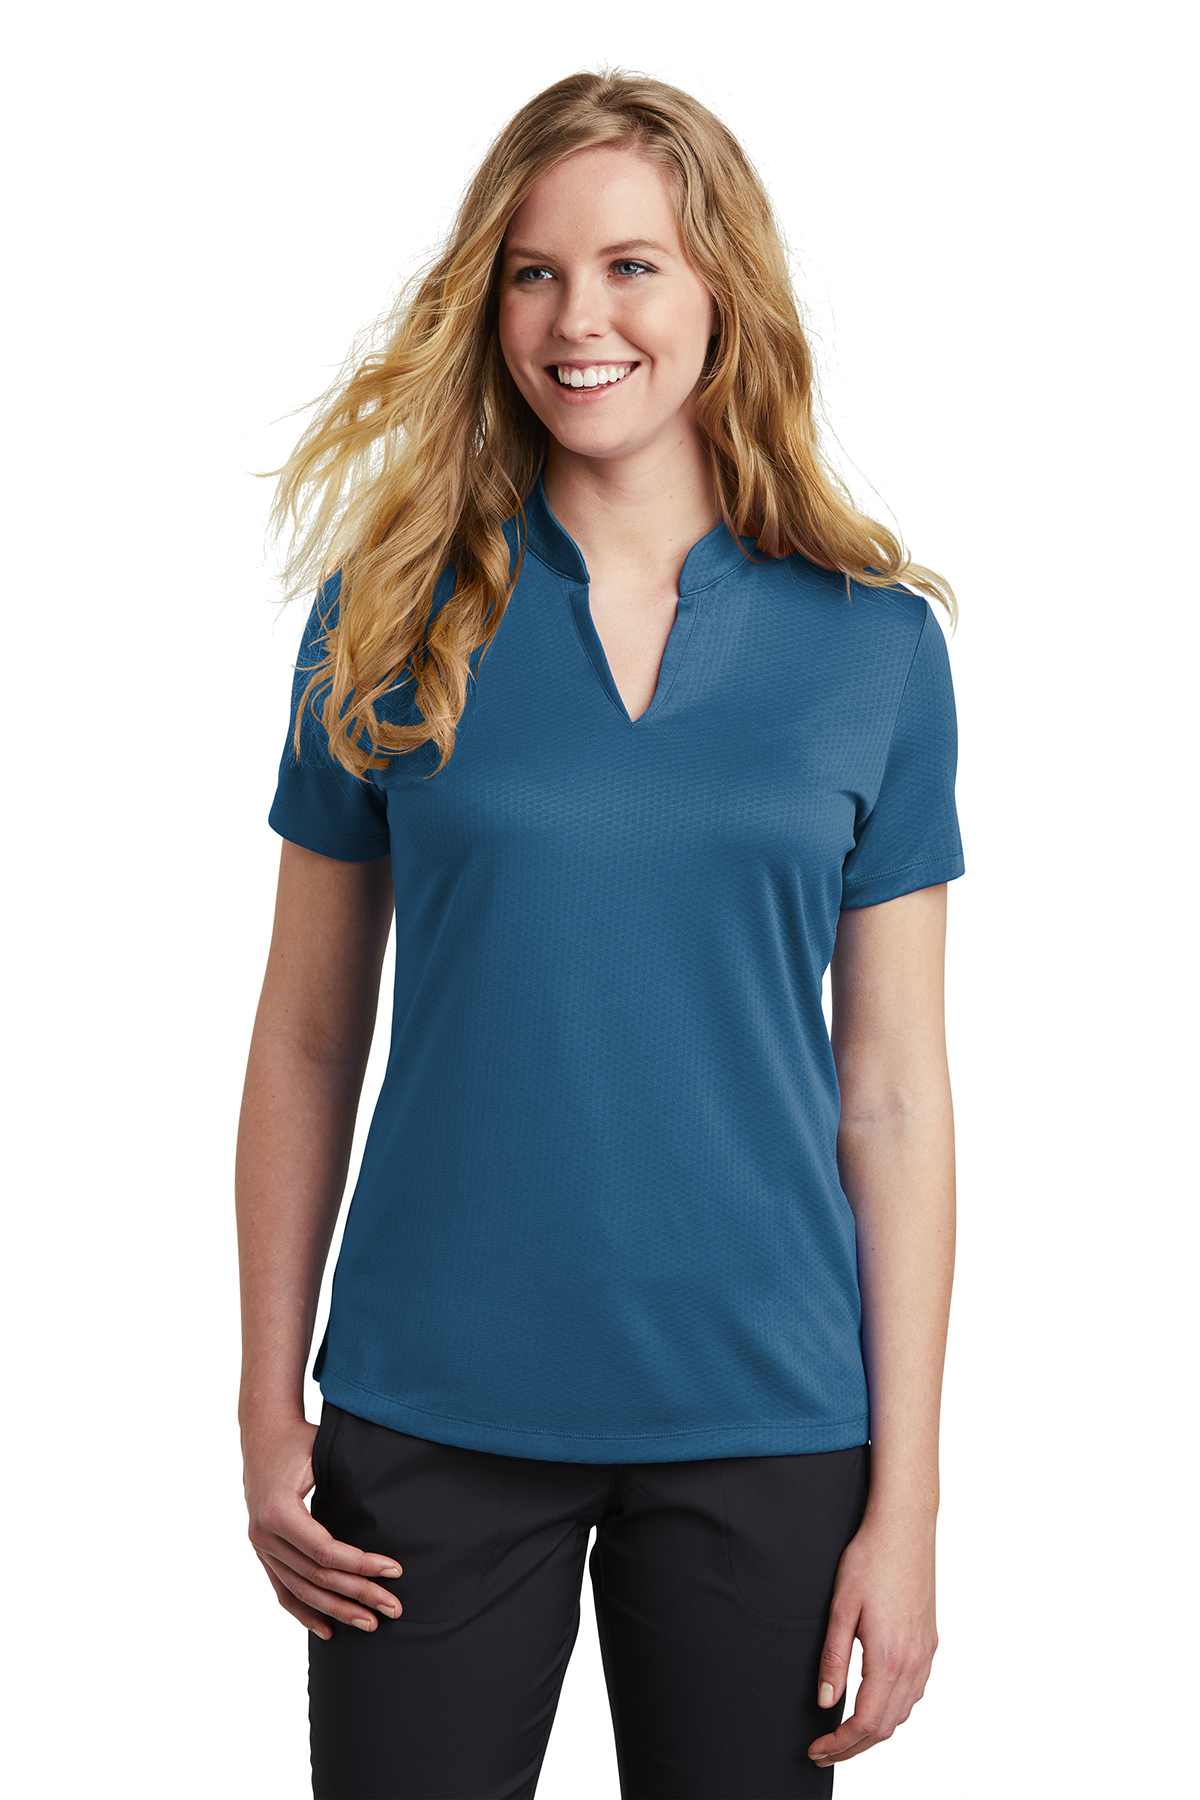 Nike Ladies Dri Fit Hex Textured V Neck Top Polosknits Sanmar